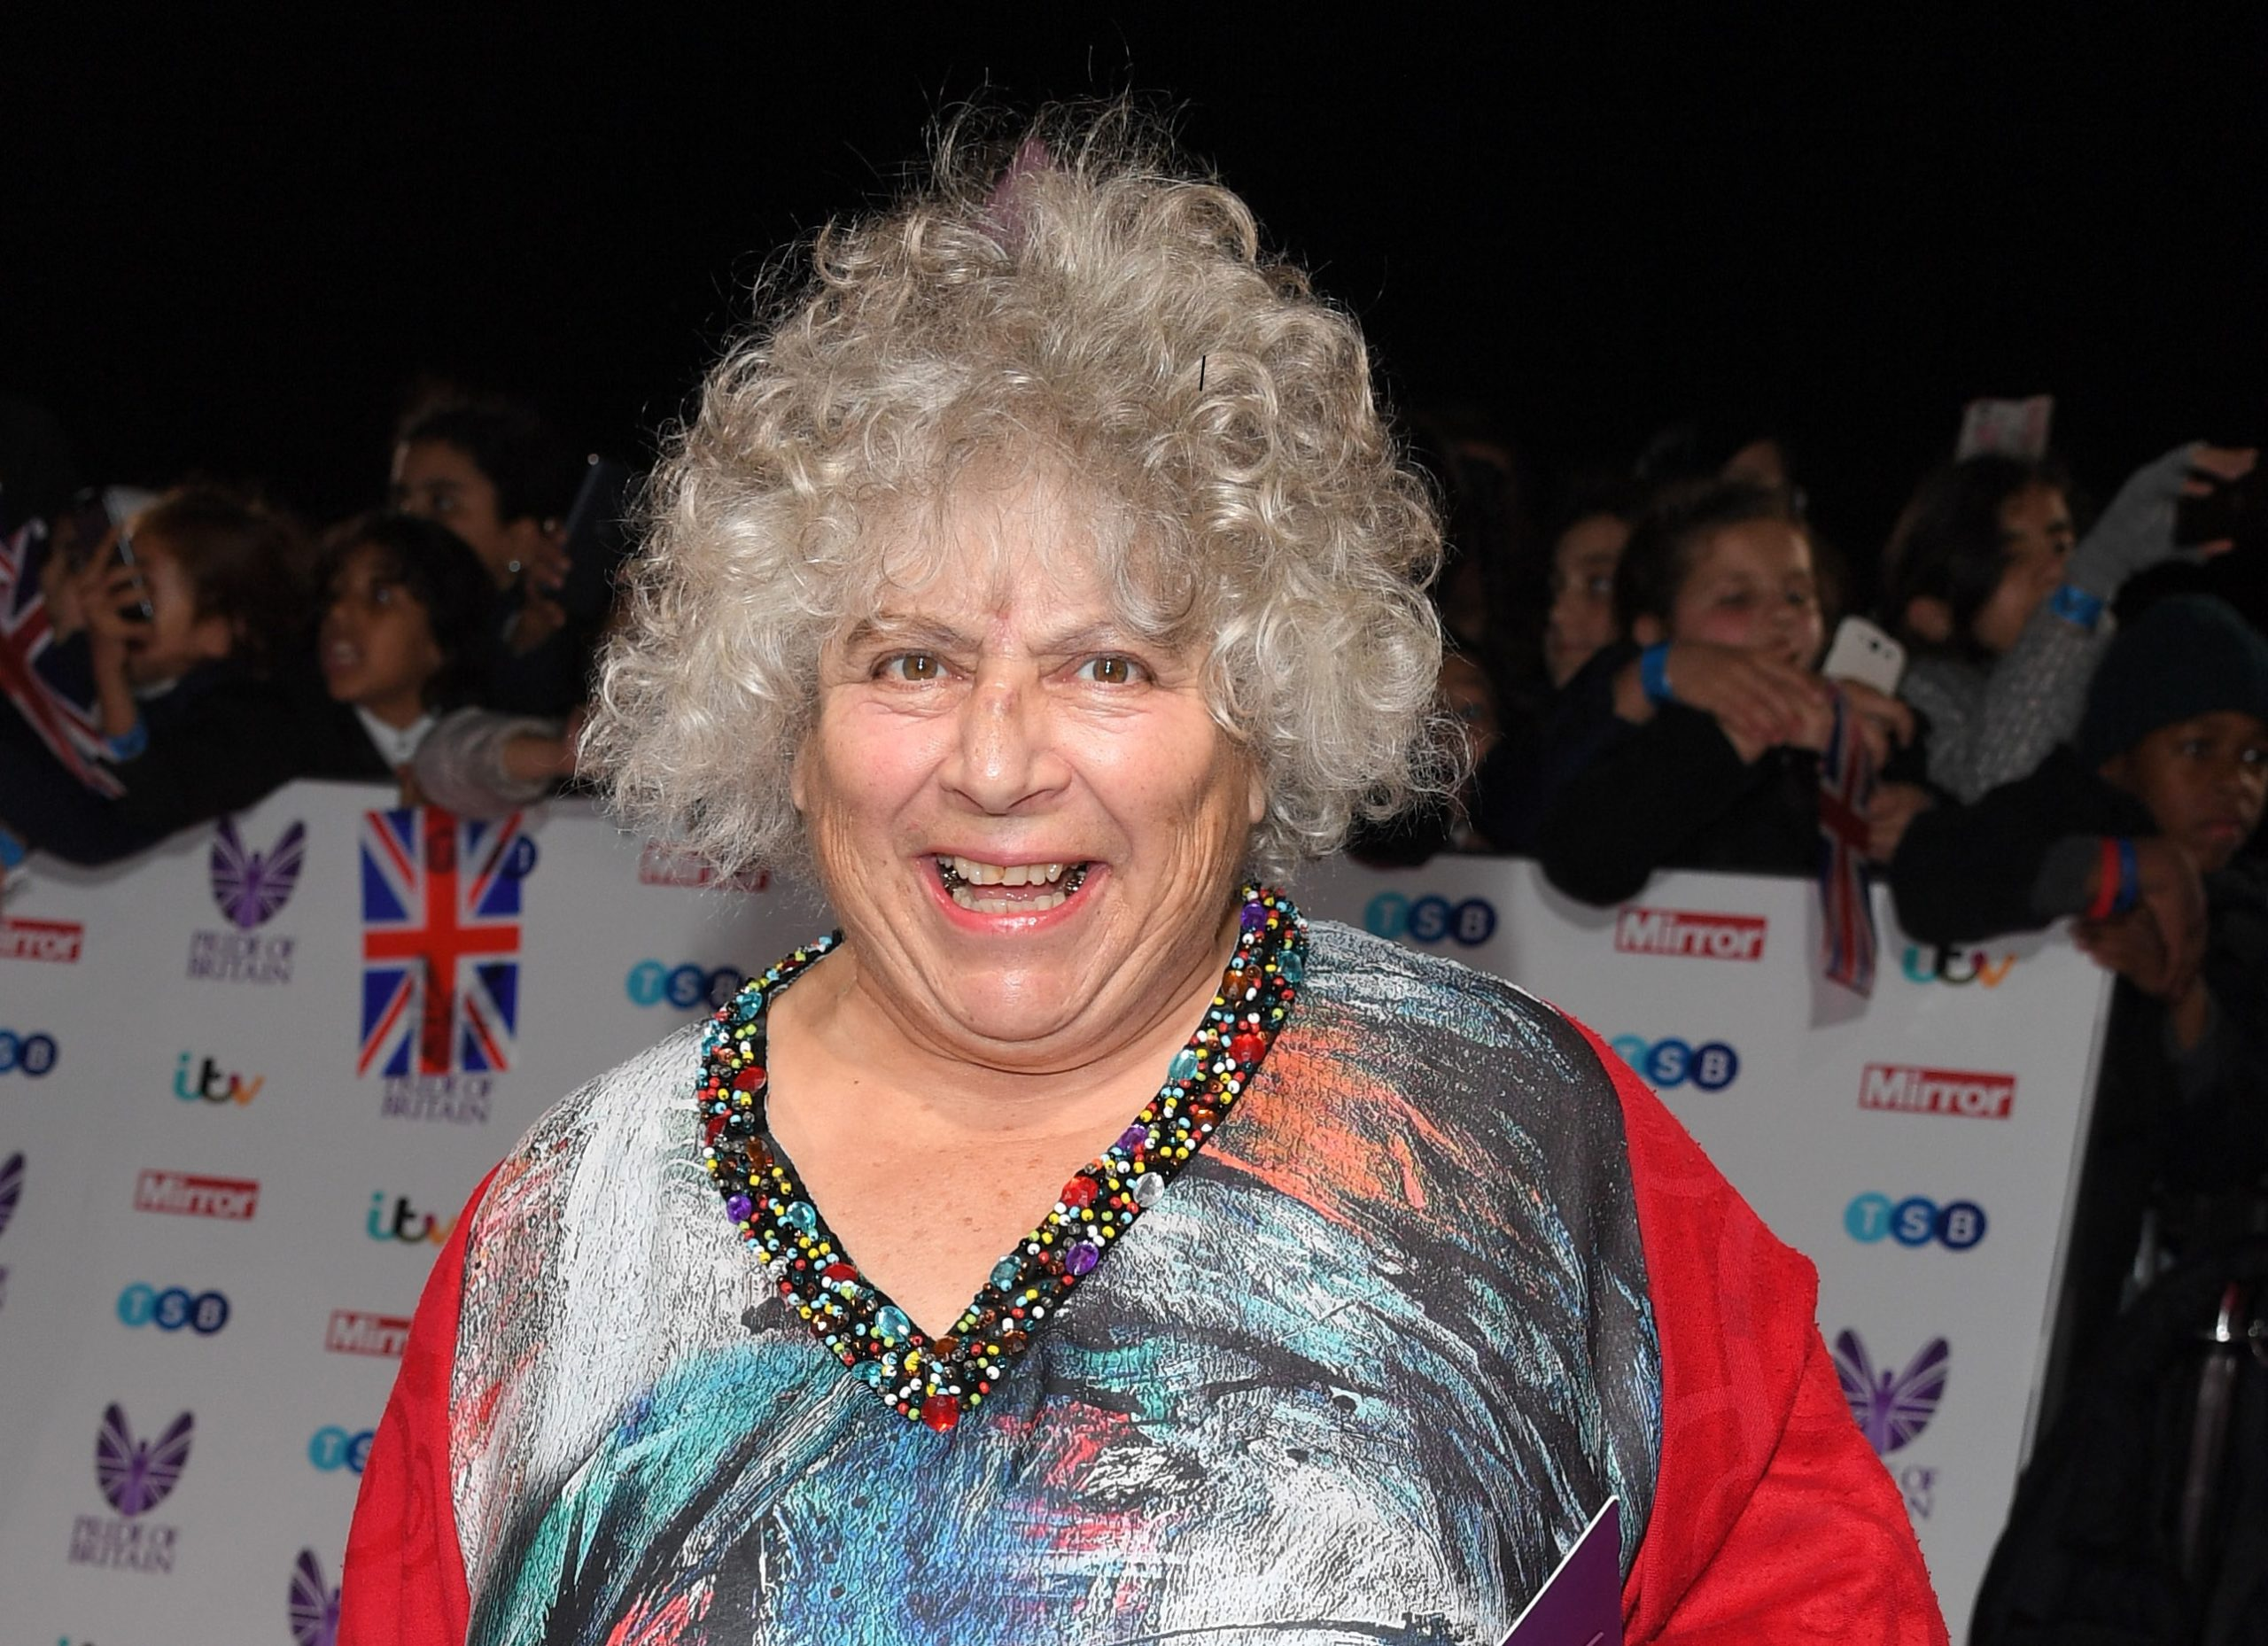 Harry Potter star Miriam Margolyes distances herself from JK Rowling as she urges people not to be 'fascist' about gender